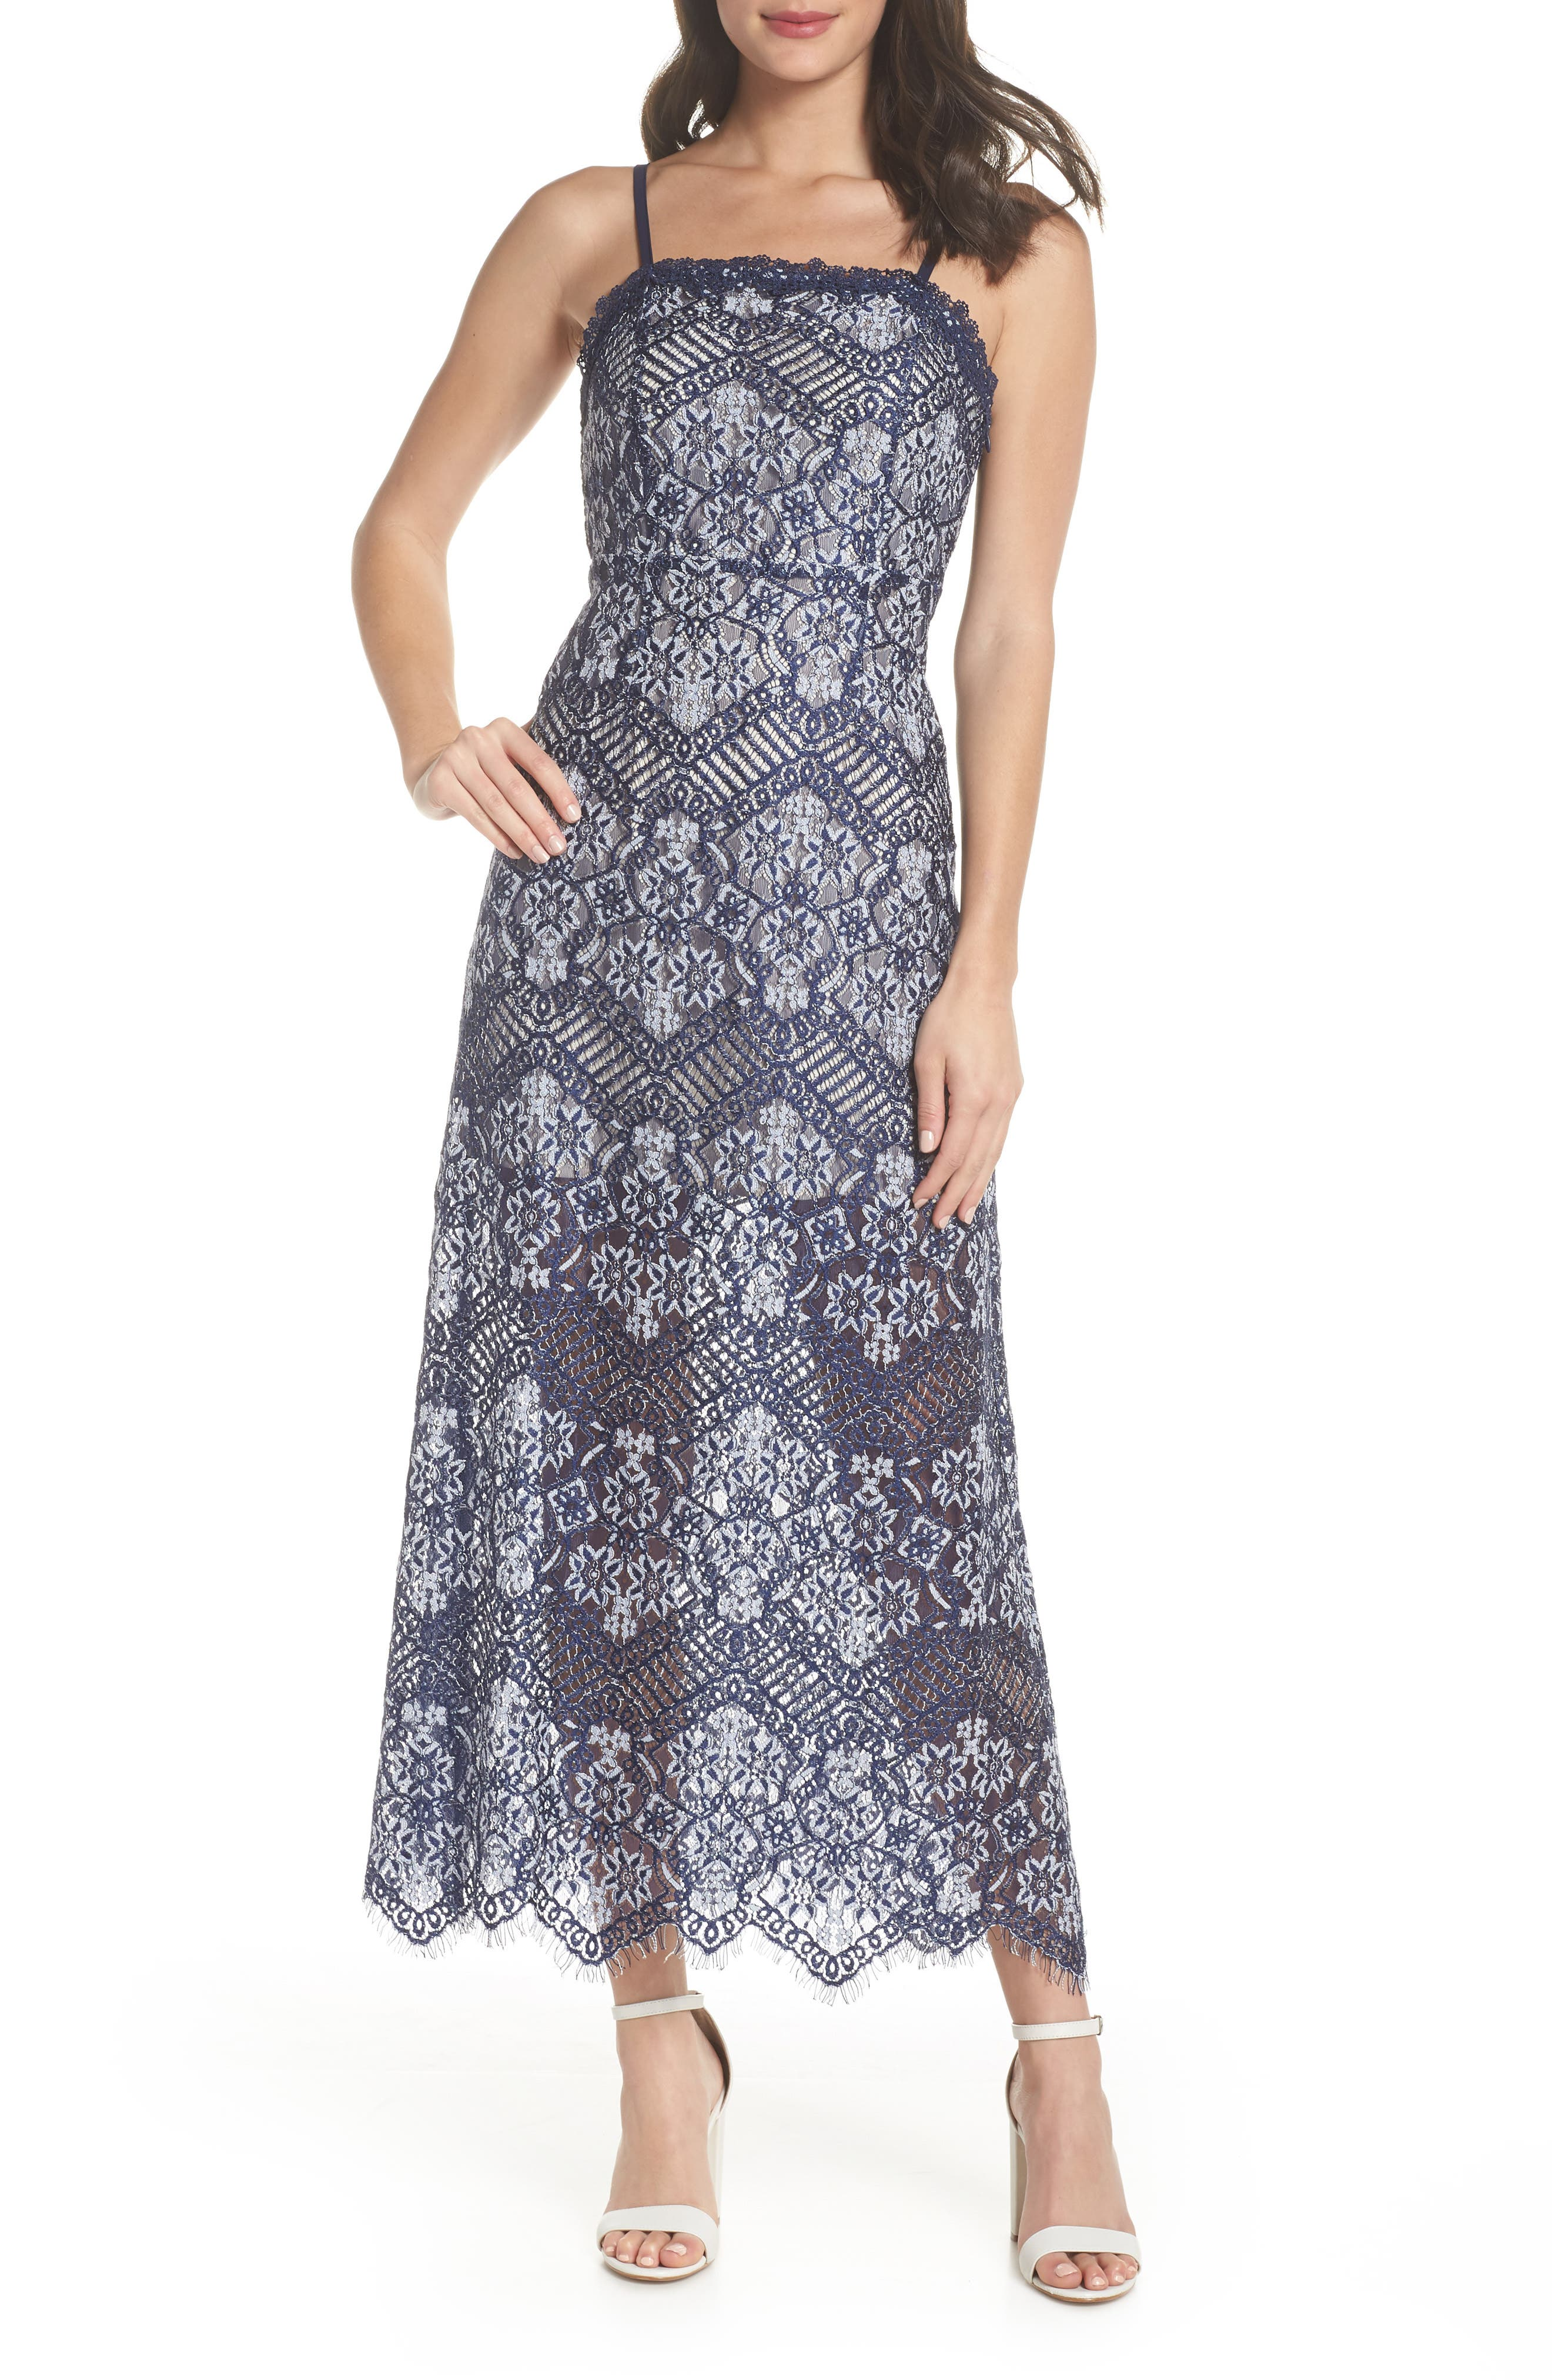 Daleyza Open Back Lace Gown,                             Main thumbnail 1, color,                             410